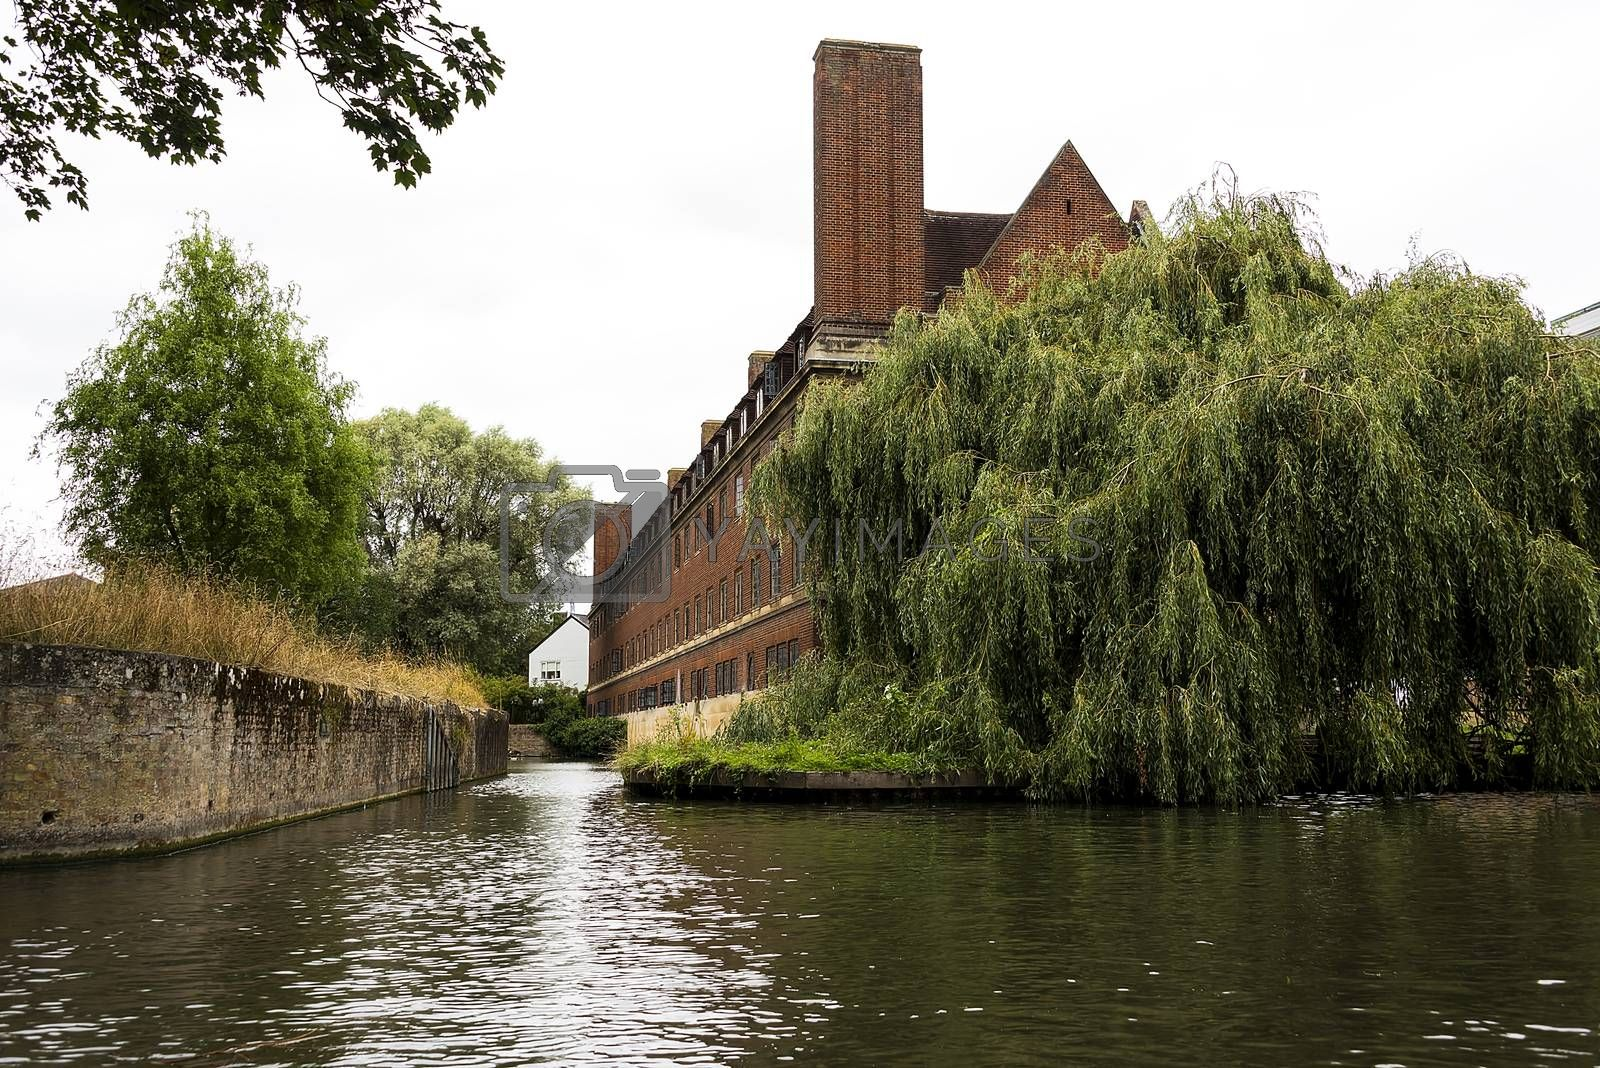 UK, Cambridge - August 2018: Back of the Lutyens building, Magdalene College, from the River Cam